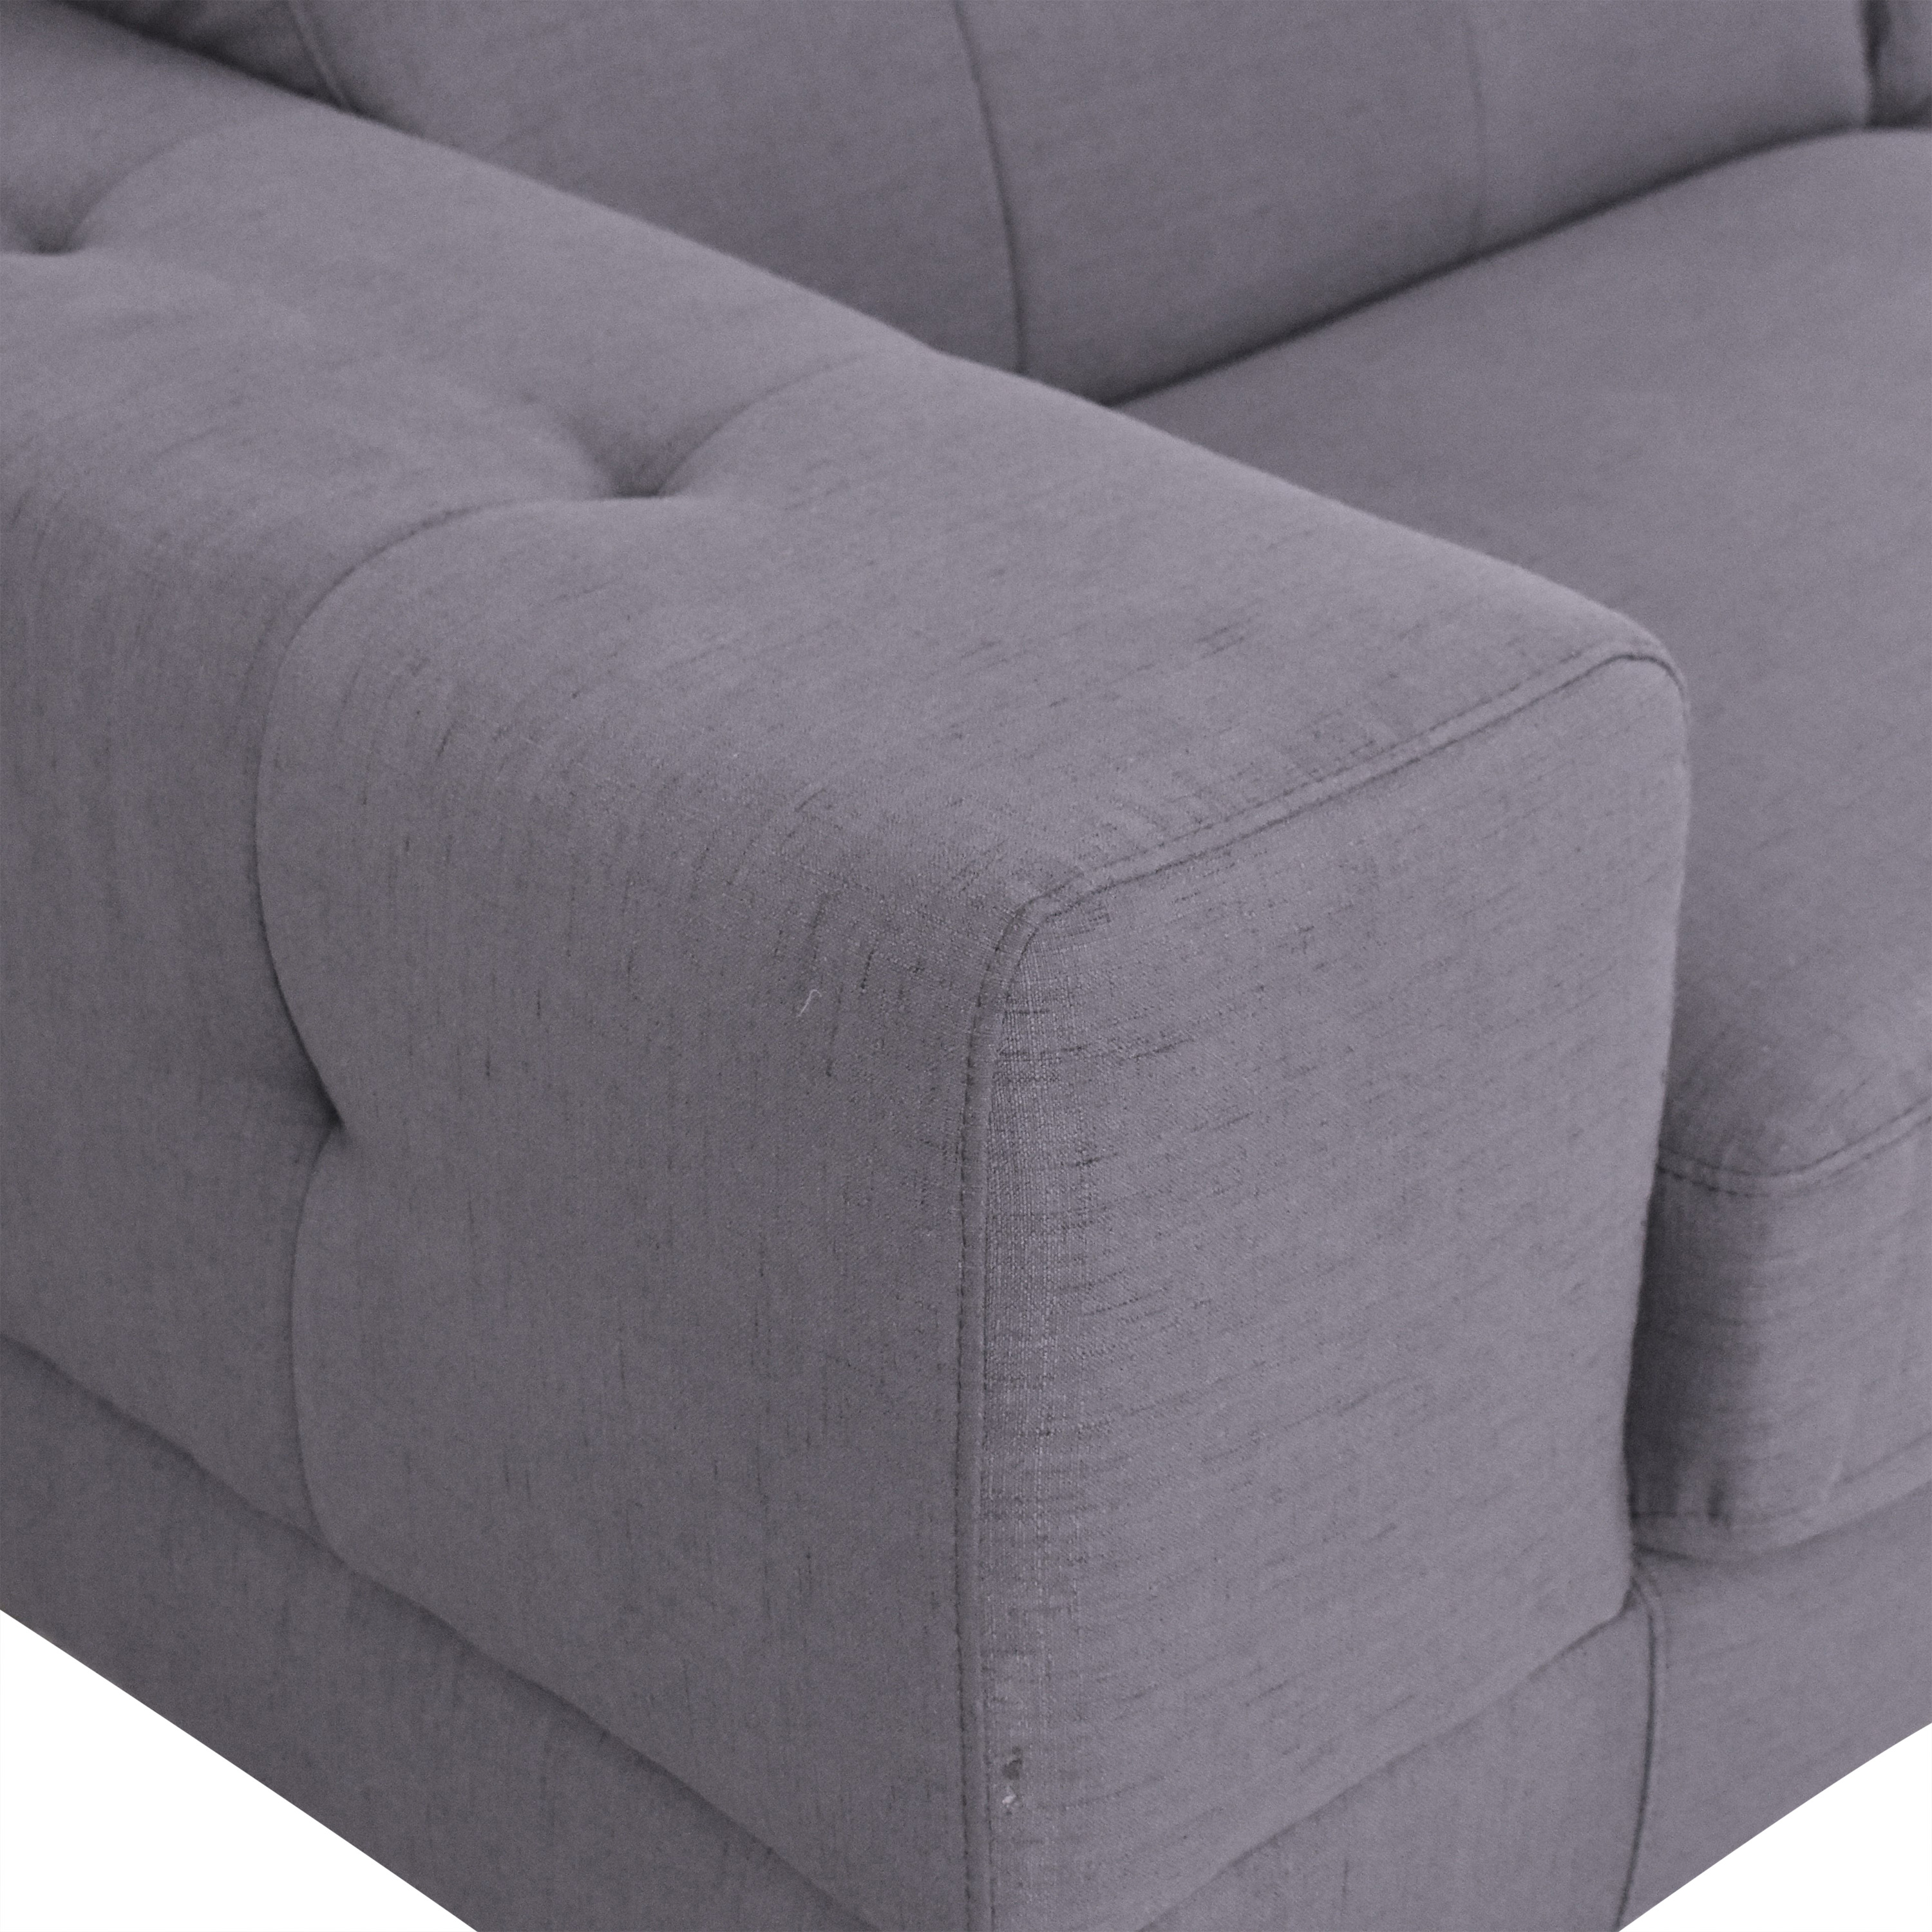 Overstock Halsted Tufted Chaise Sectional Sofa Overstock